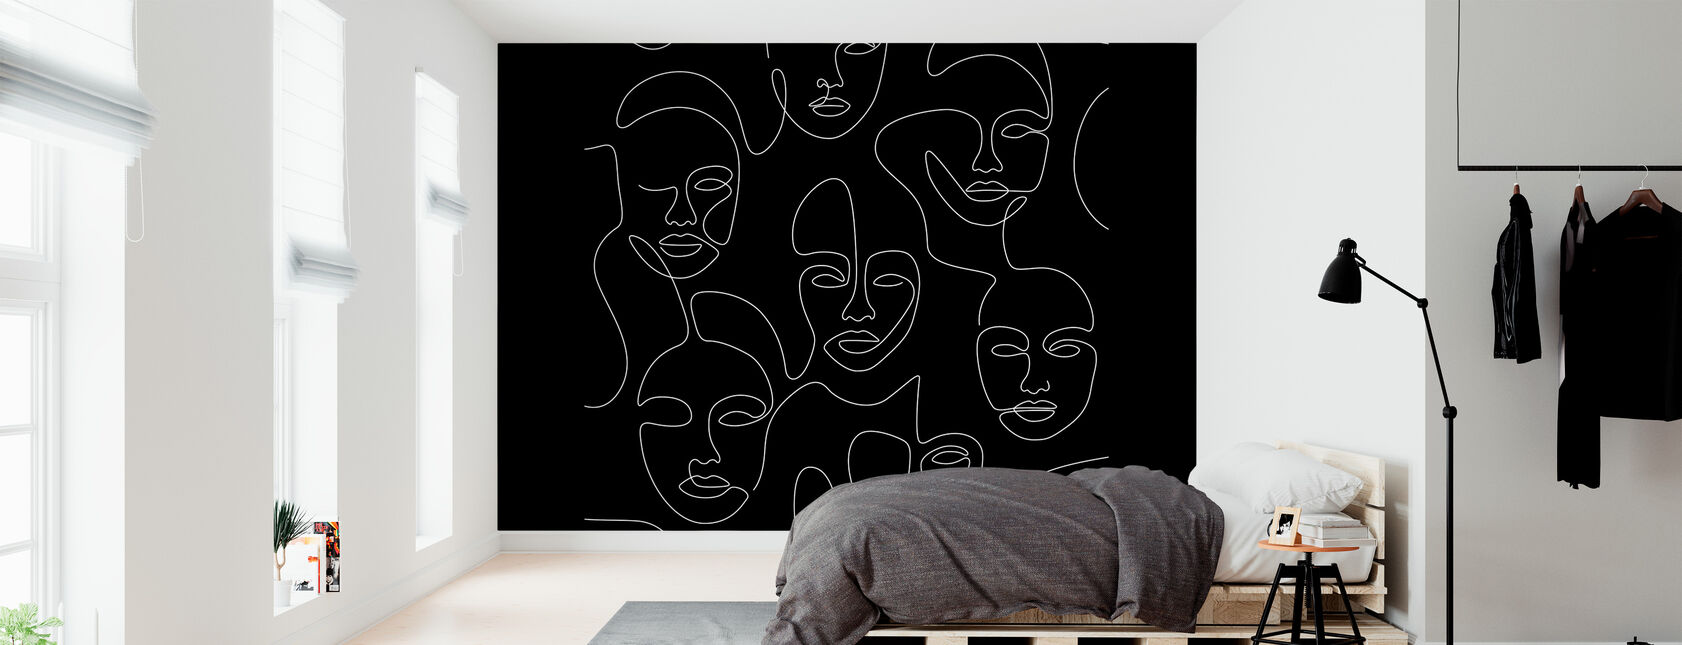 Nighttime Portraits II - Wallpaper - Bedroom